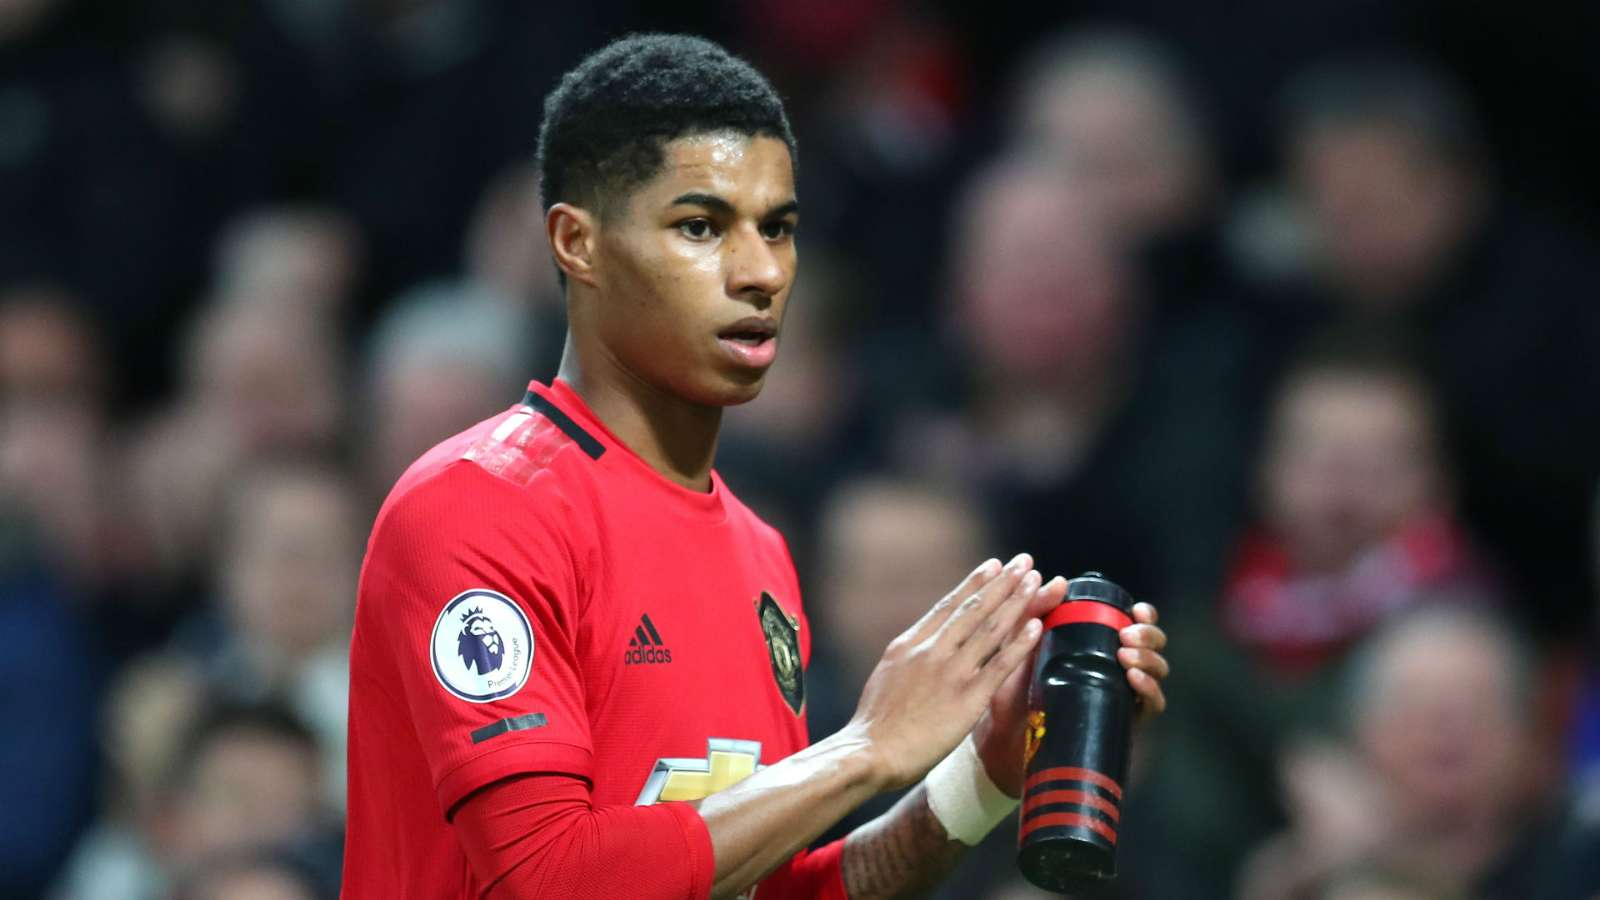 'I used to go to reserve games just to watch him' - Scholes delighted to see Rashford thrive at Man Utd - Bóng Đá